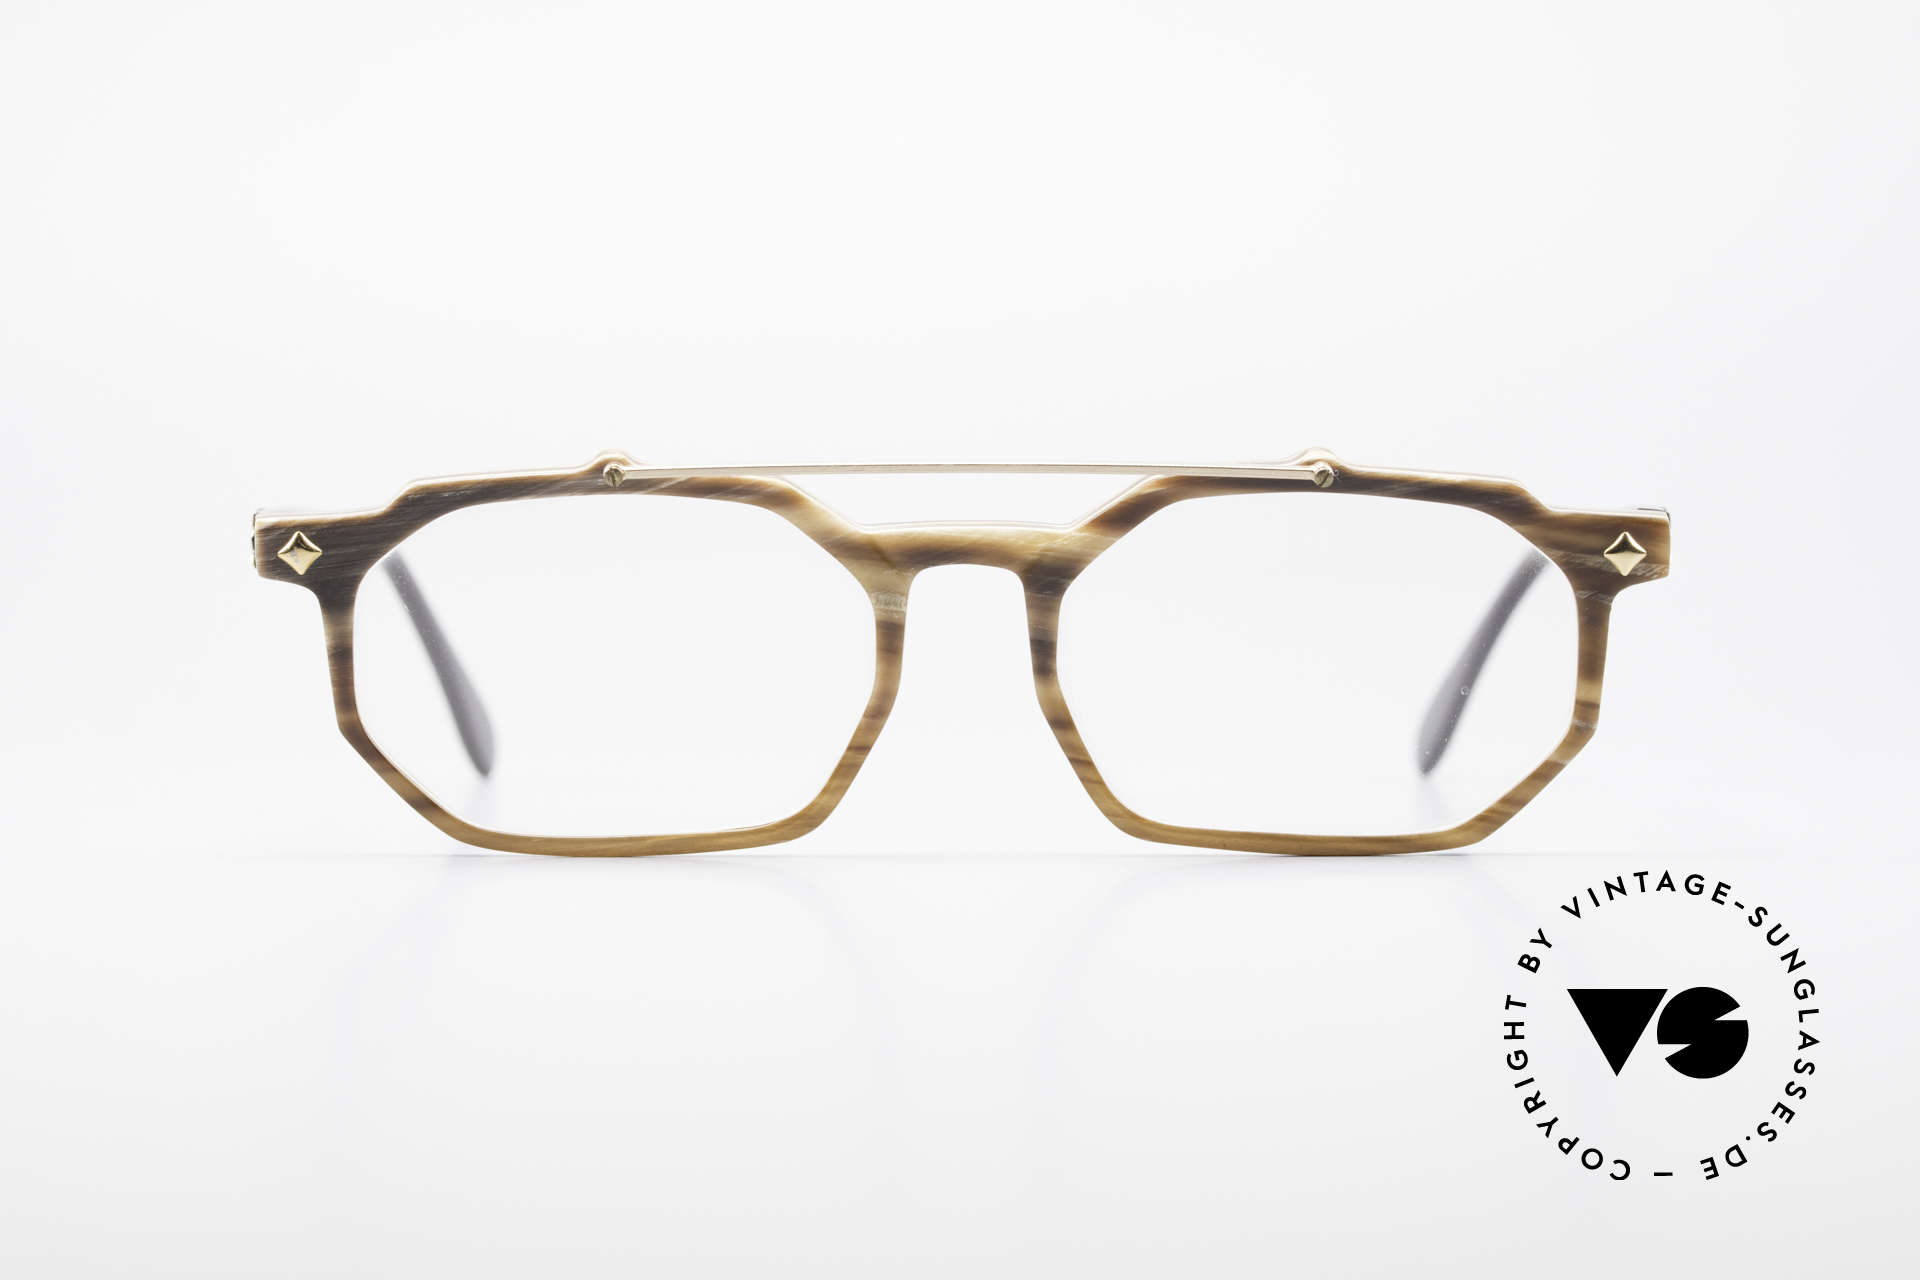 MCM München 301 Buffalo Horn Vintage Frame, real BUFFALO HORN frame with MCM appliqué, Made for Men and Women